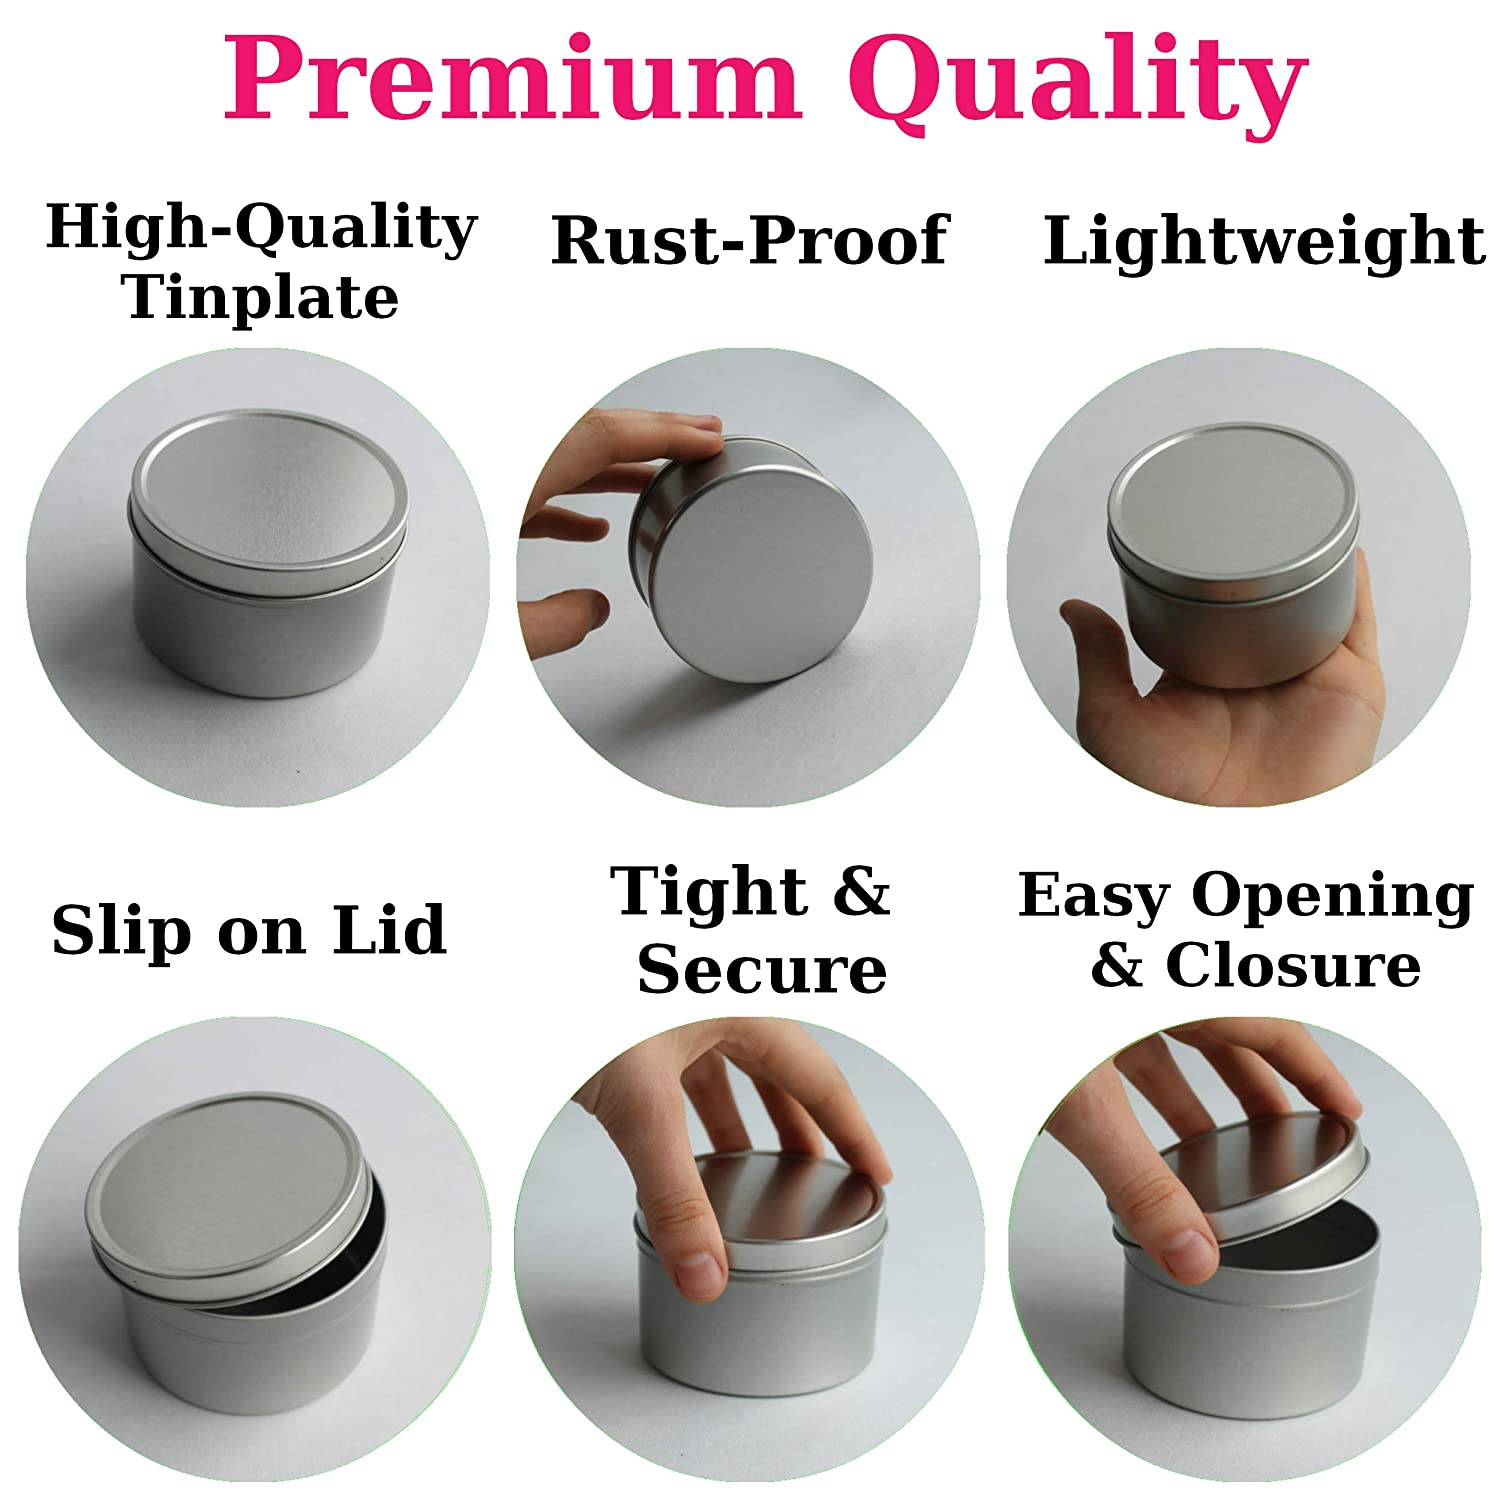 12 pcs /& Handmade with Love Stickers 24 pcs Cozyours 8oz Tins with Lids for Candle Making and Storage